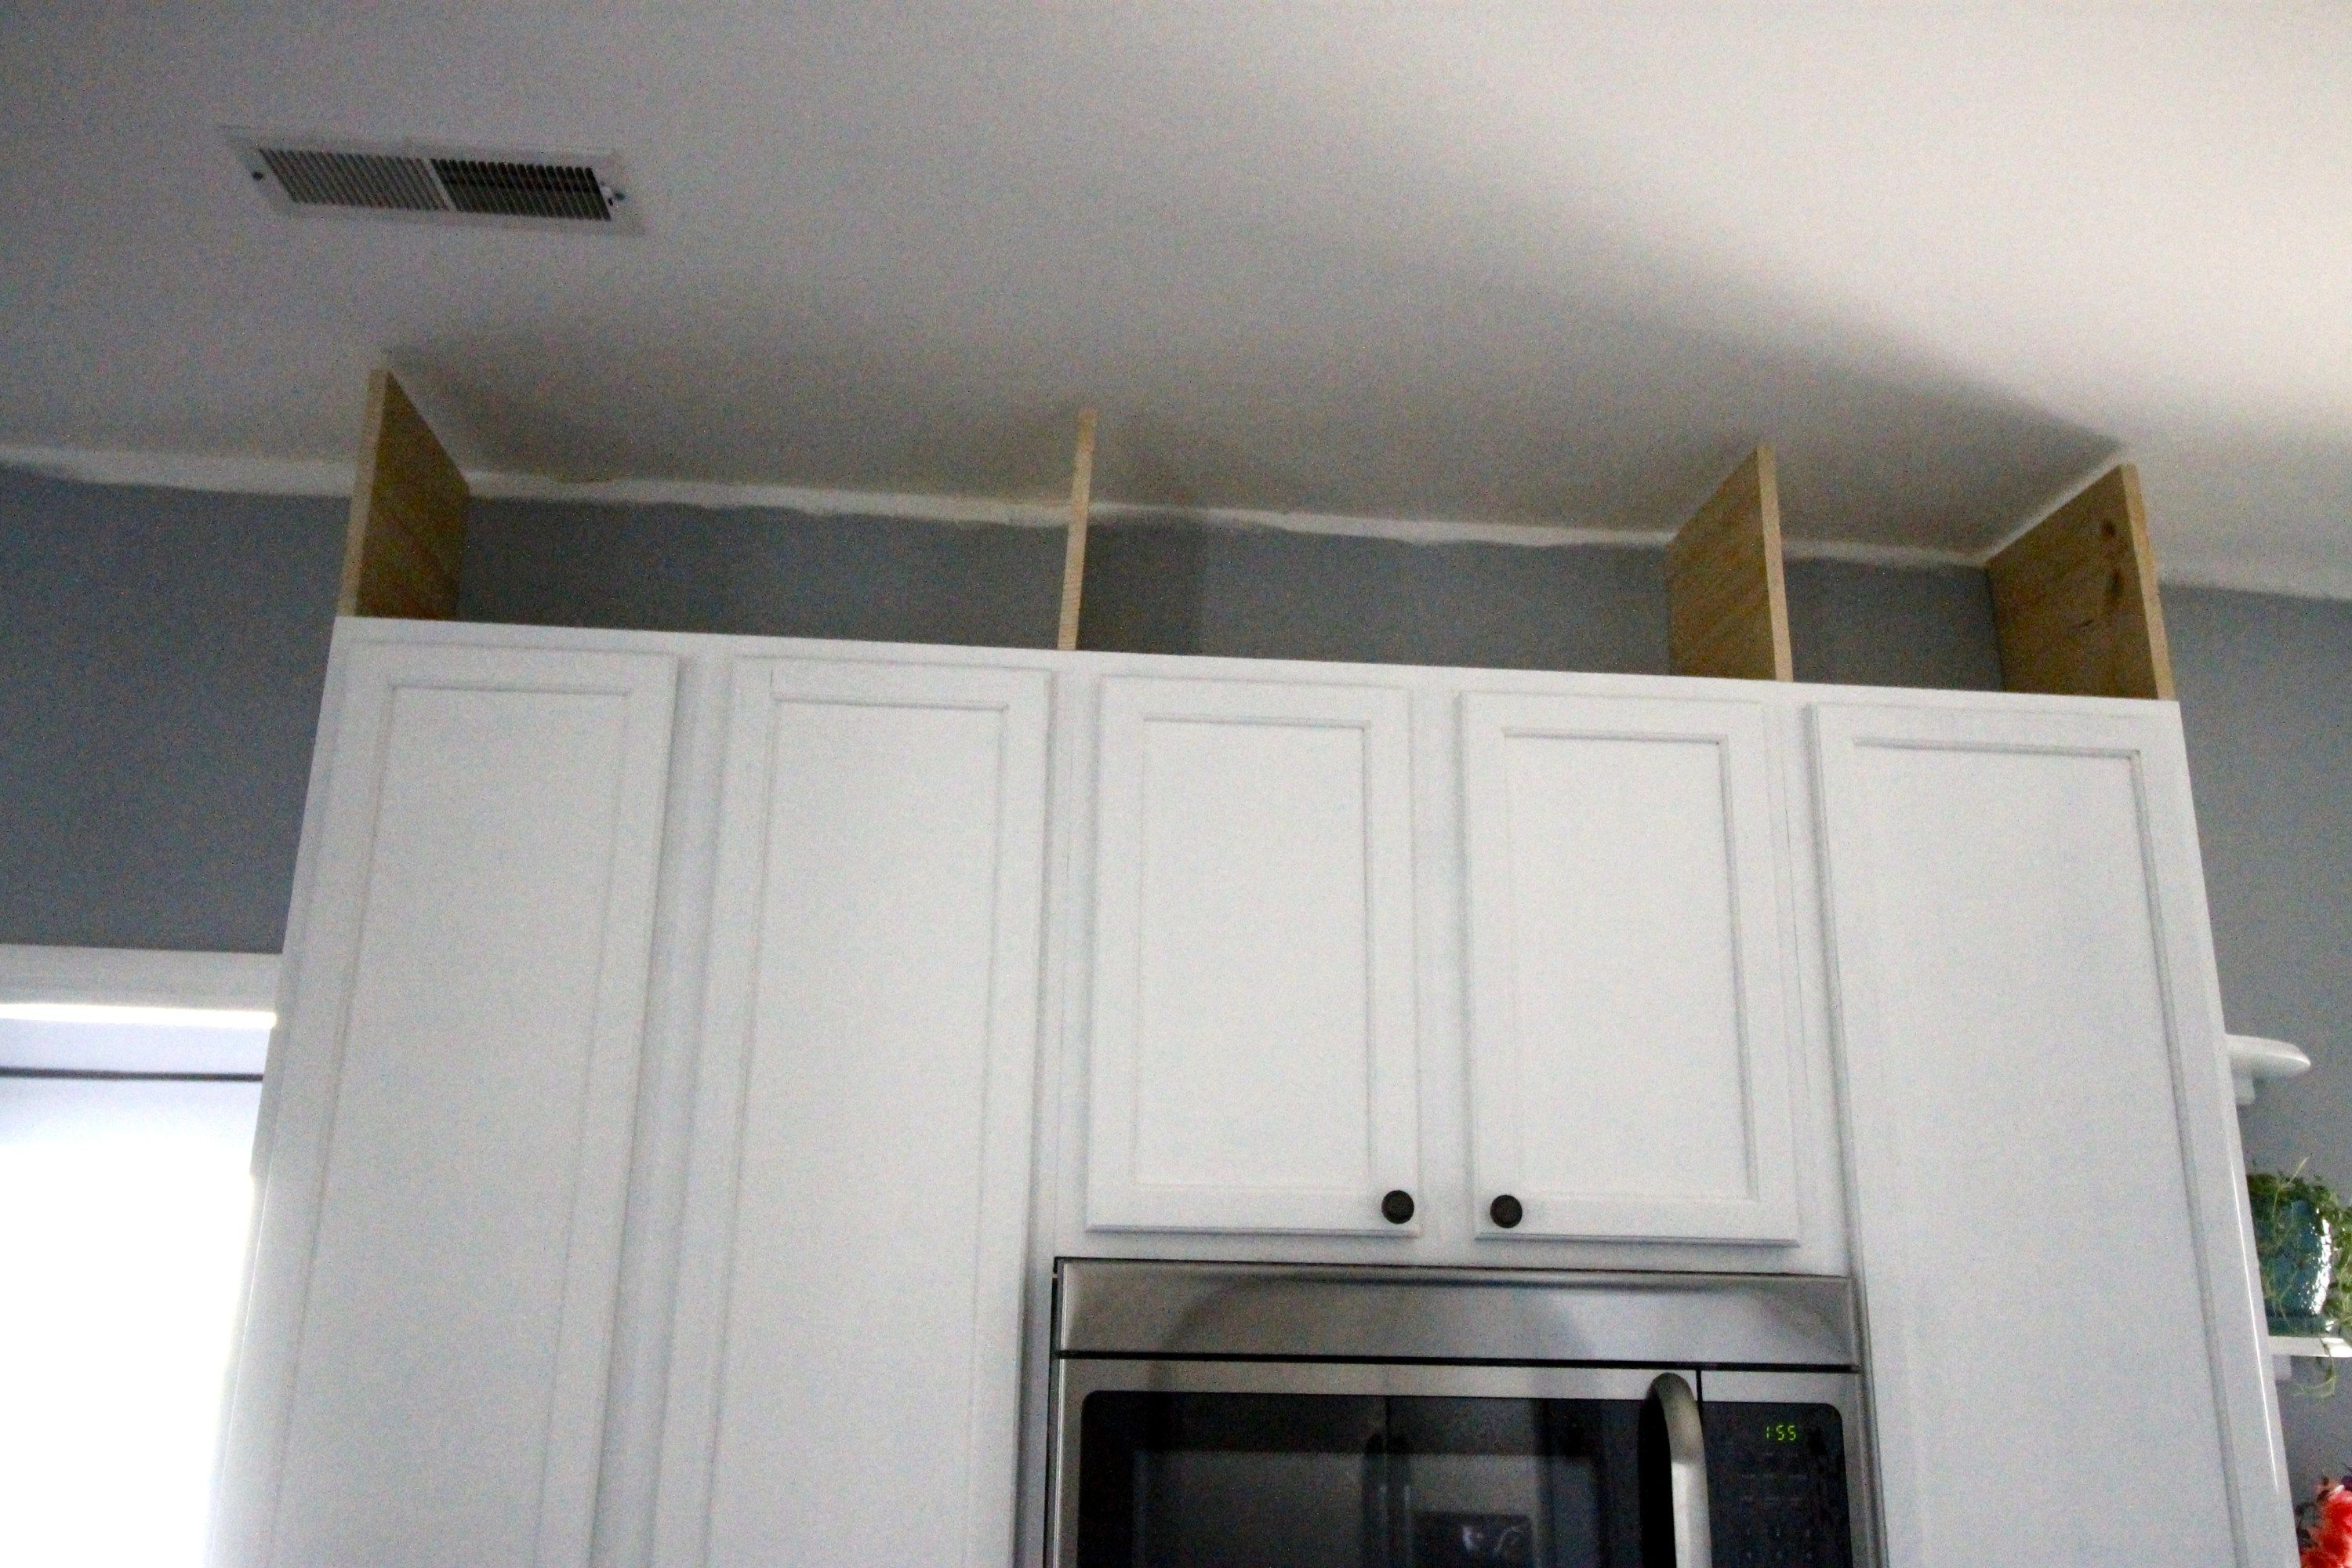 How To Extend Kitchen Cabinets To The Ceiling Cabinets To Ceiling Kitchen Cabinets To Ceiling Kitchen Decor Modern